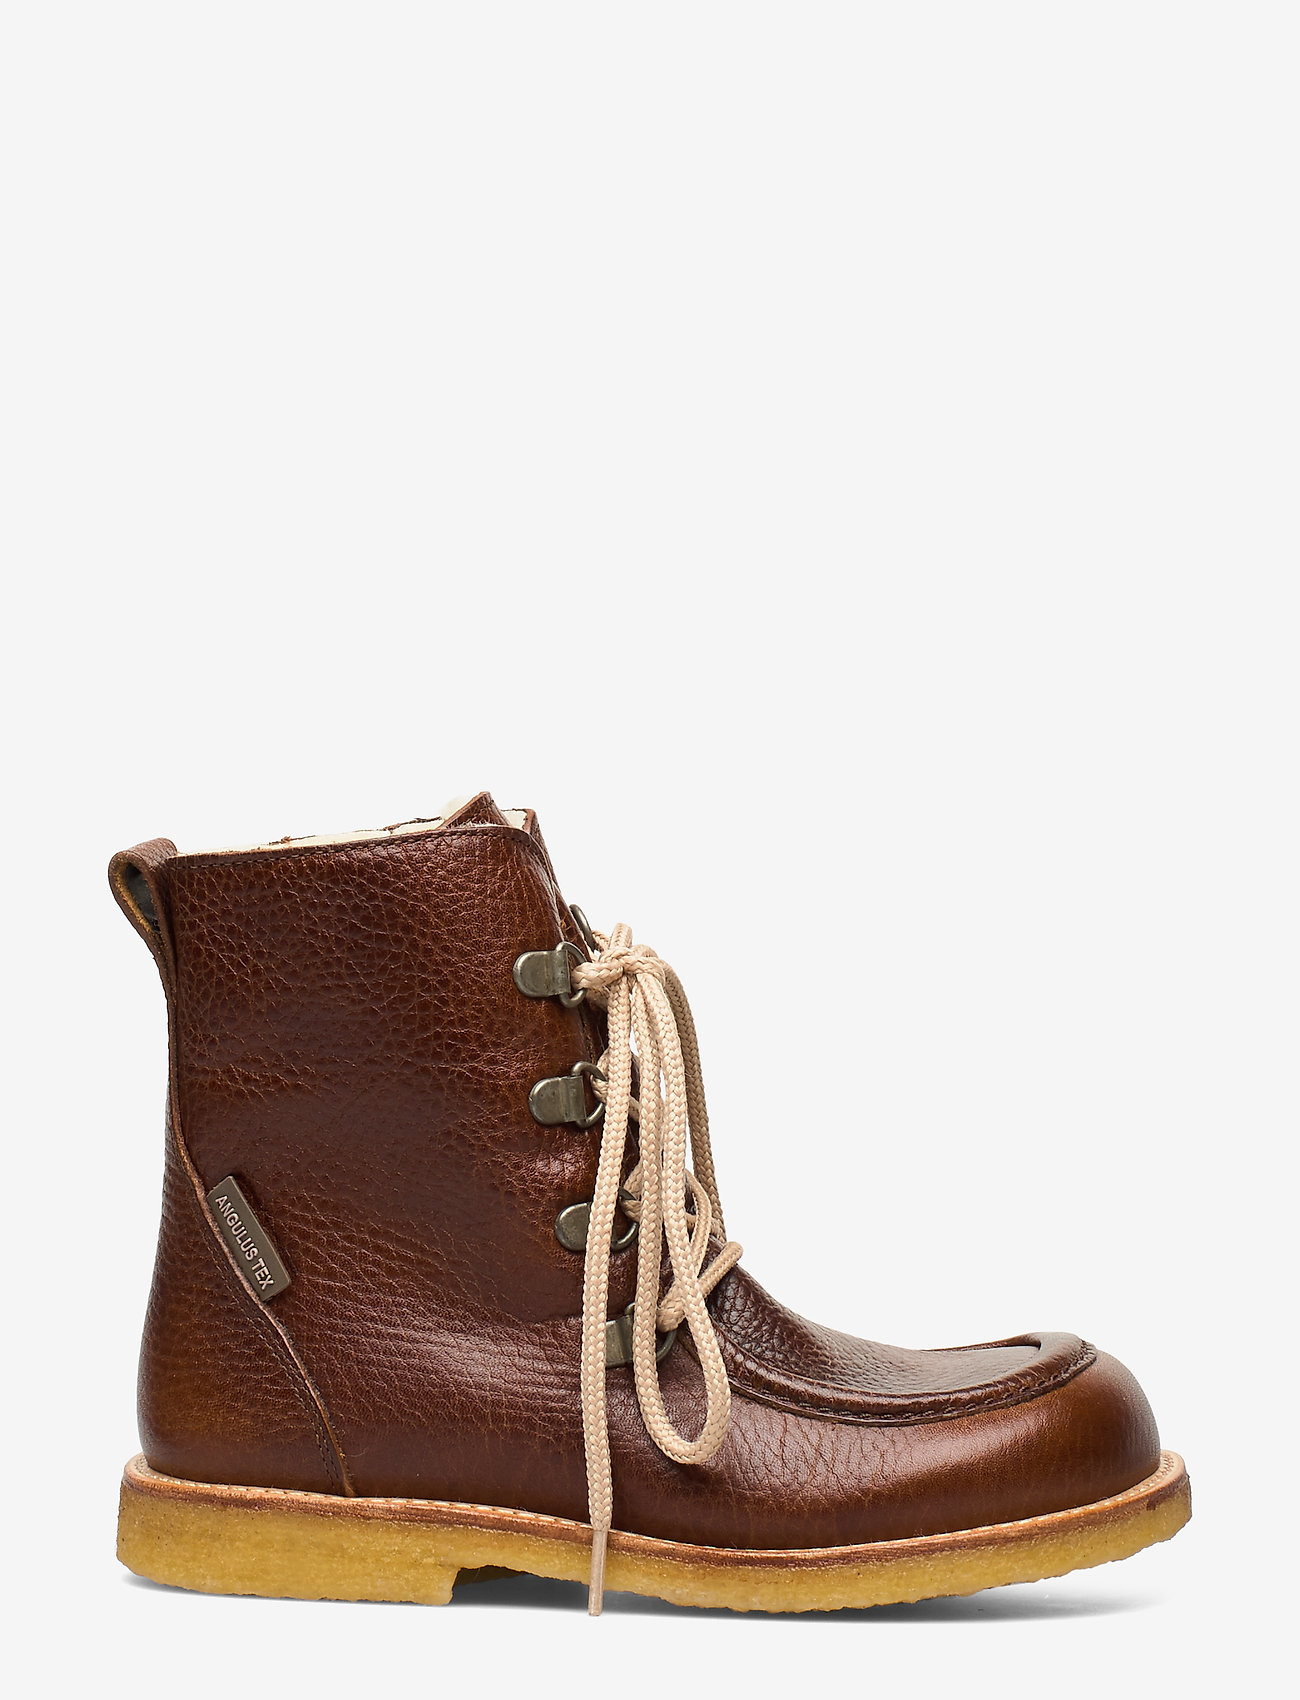 ANGULUS - 2380 - winter boots - 2509/1589 red-brown - 1